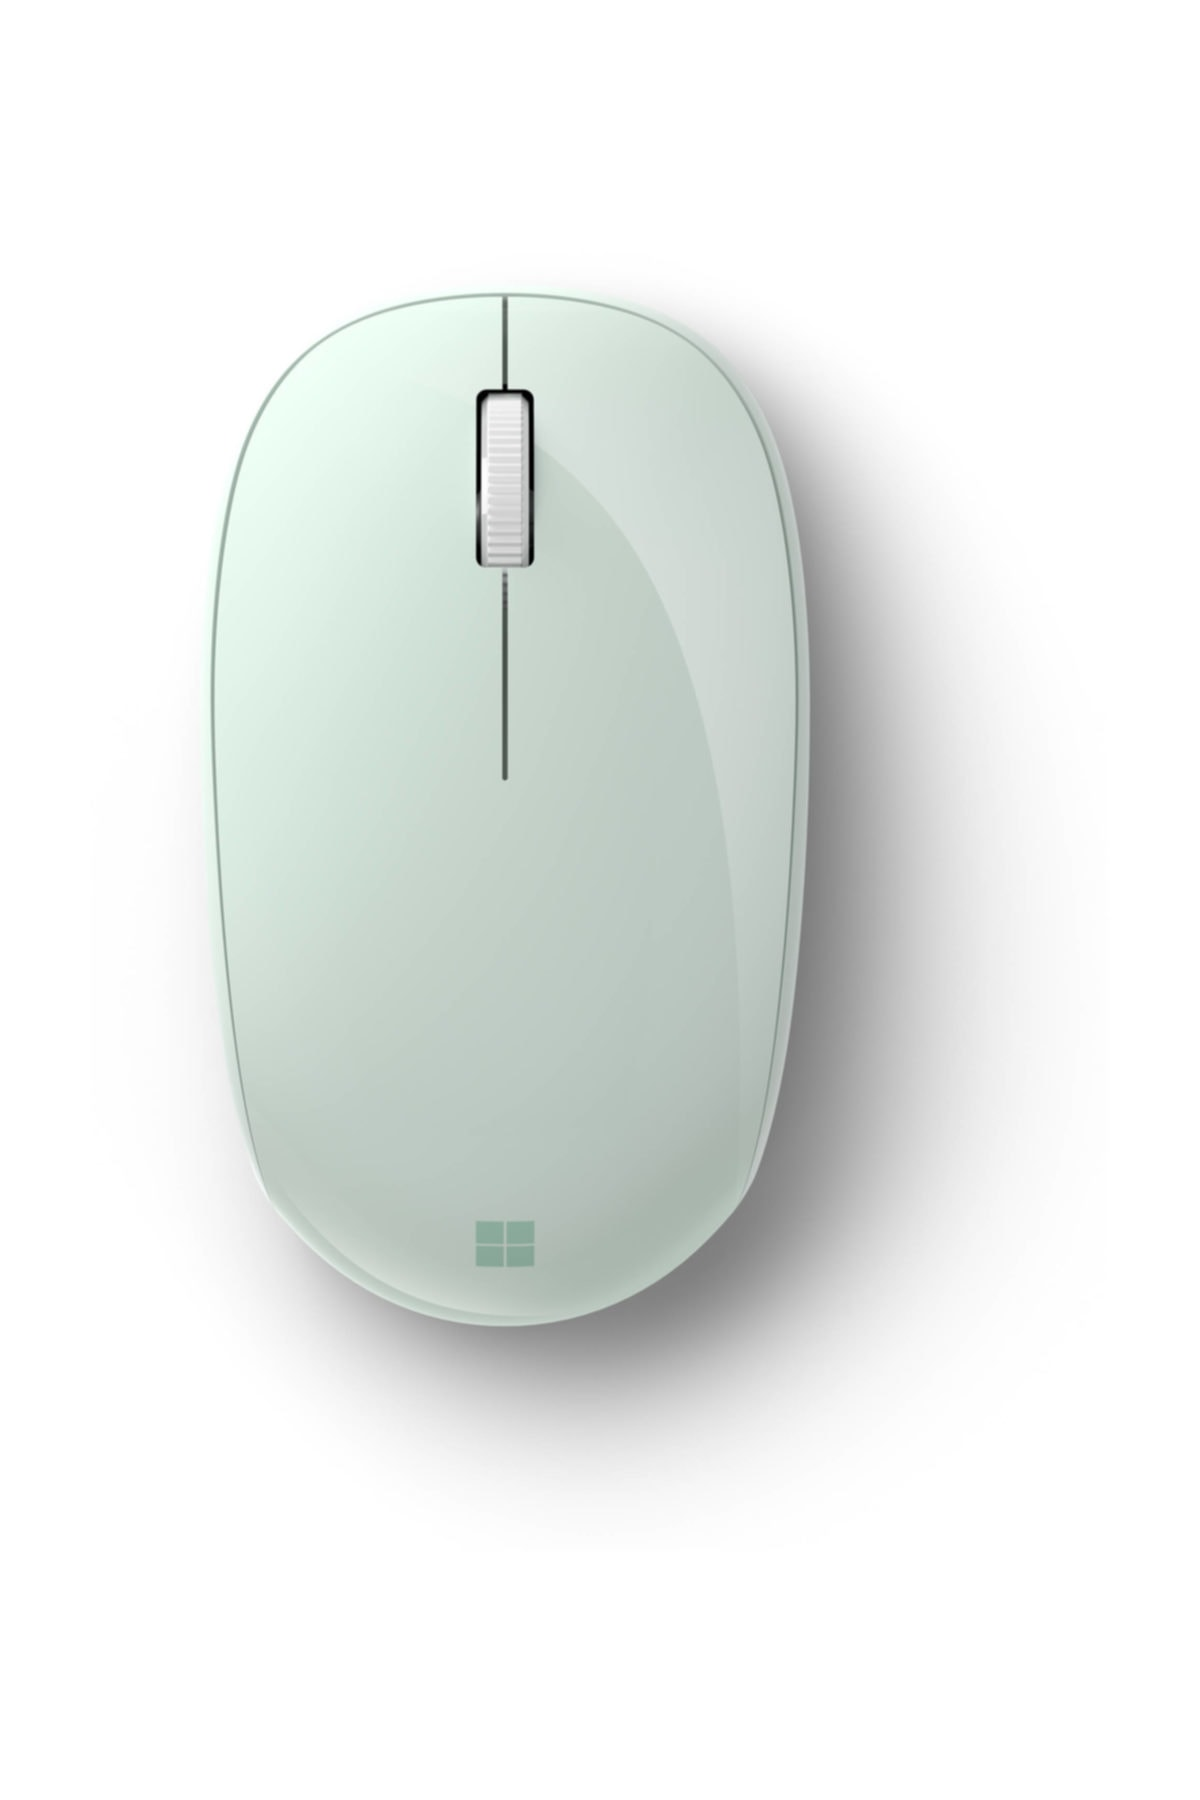 MICROSOFT 2.4ghz Low Energy Bluetooth Mouse Mint 1